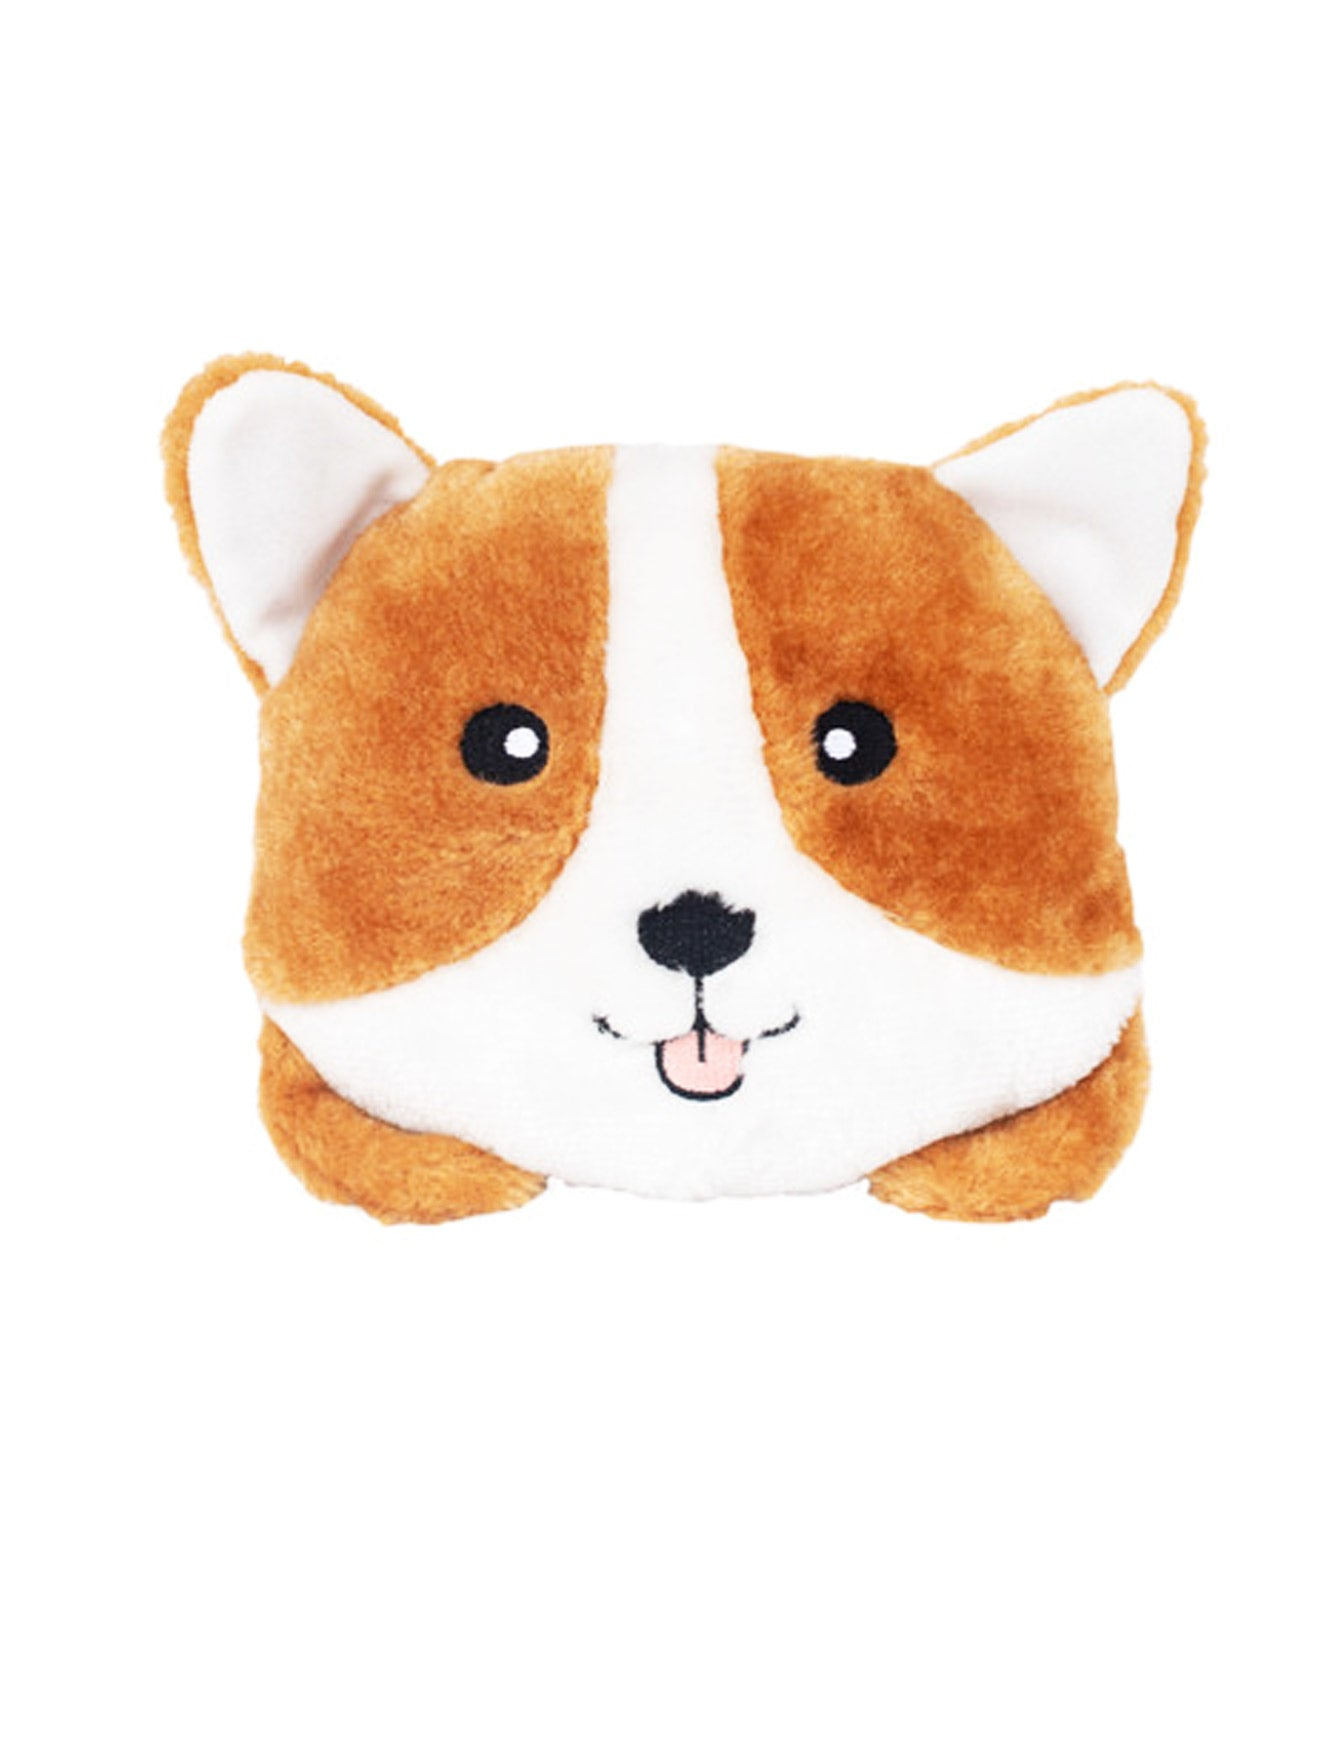 Zippypaws Corgi Bun Dog Toy | Perromart Online Pet Store Singapore